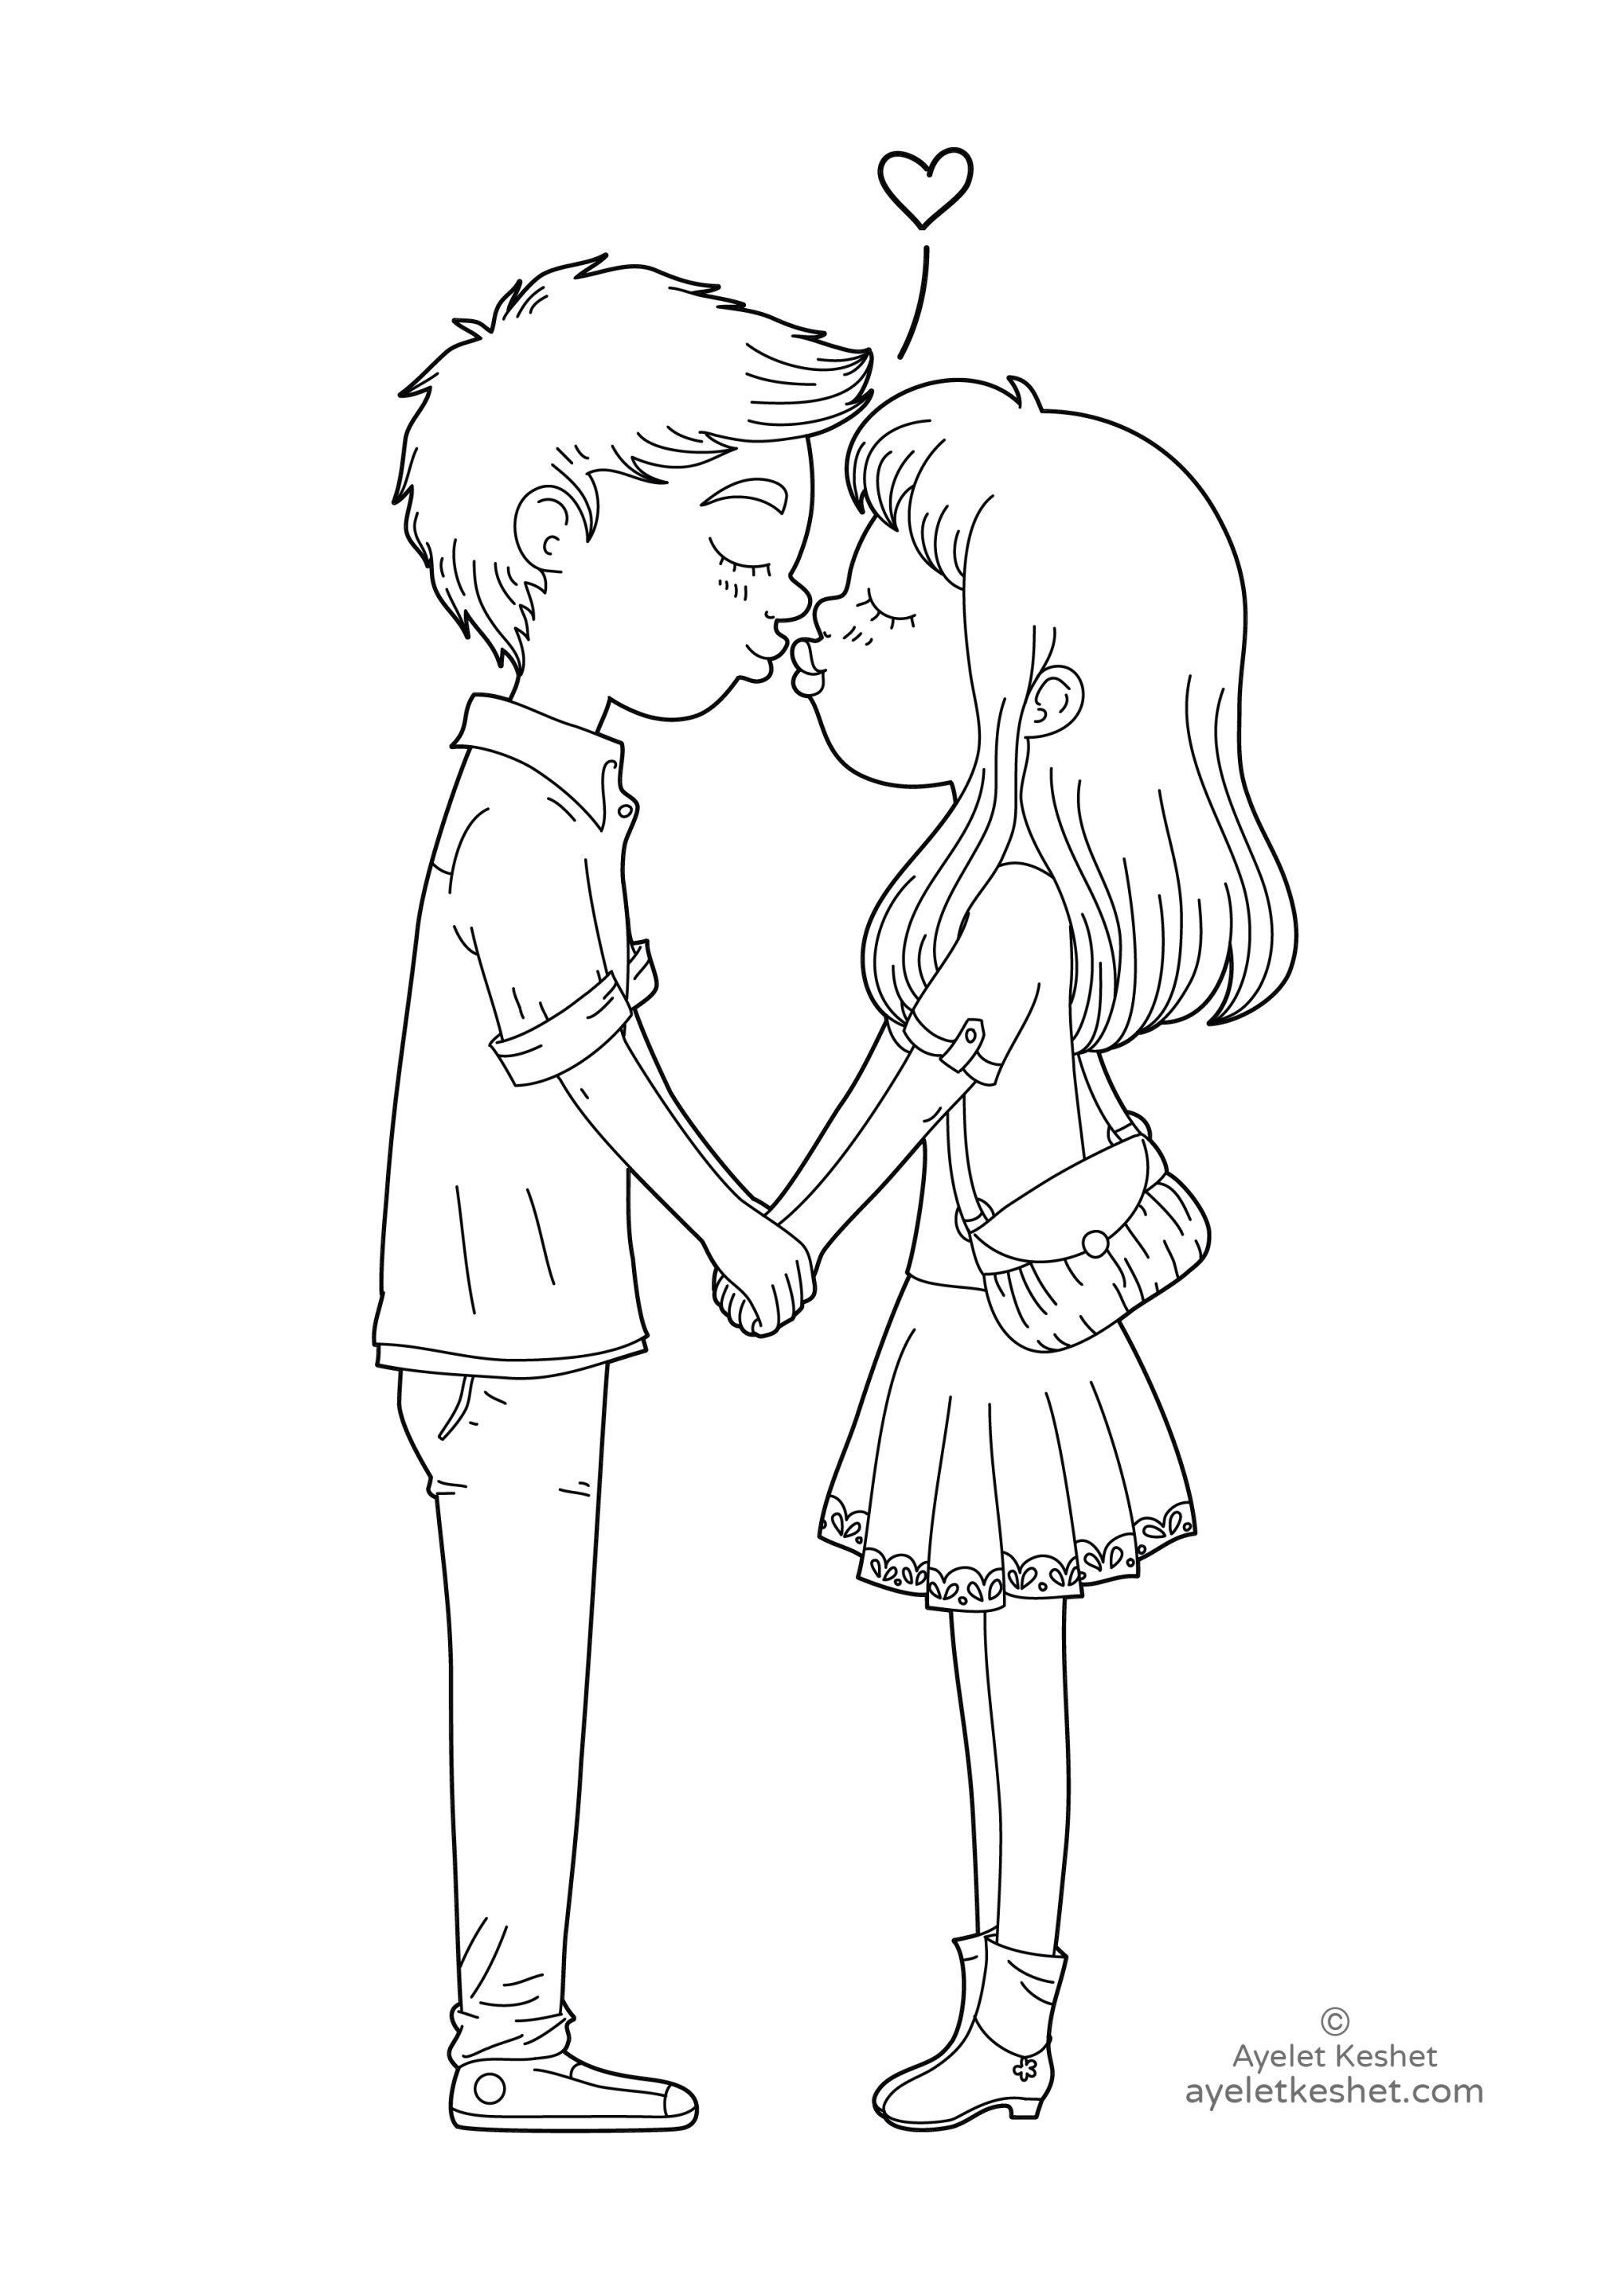 Free Coloring Pages About Feelings